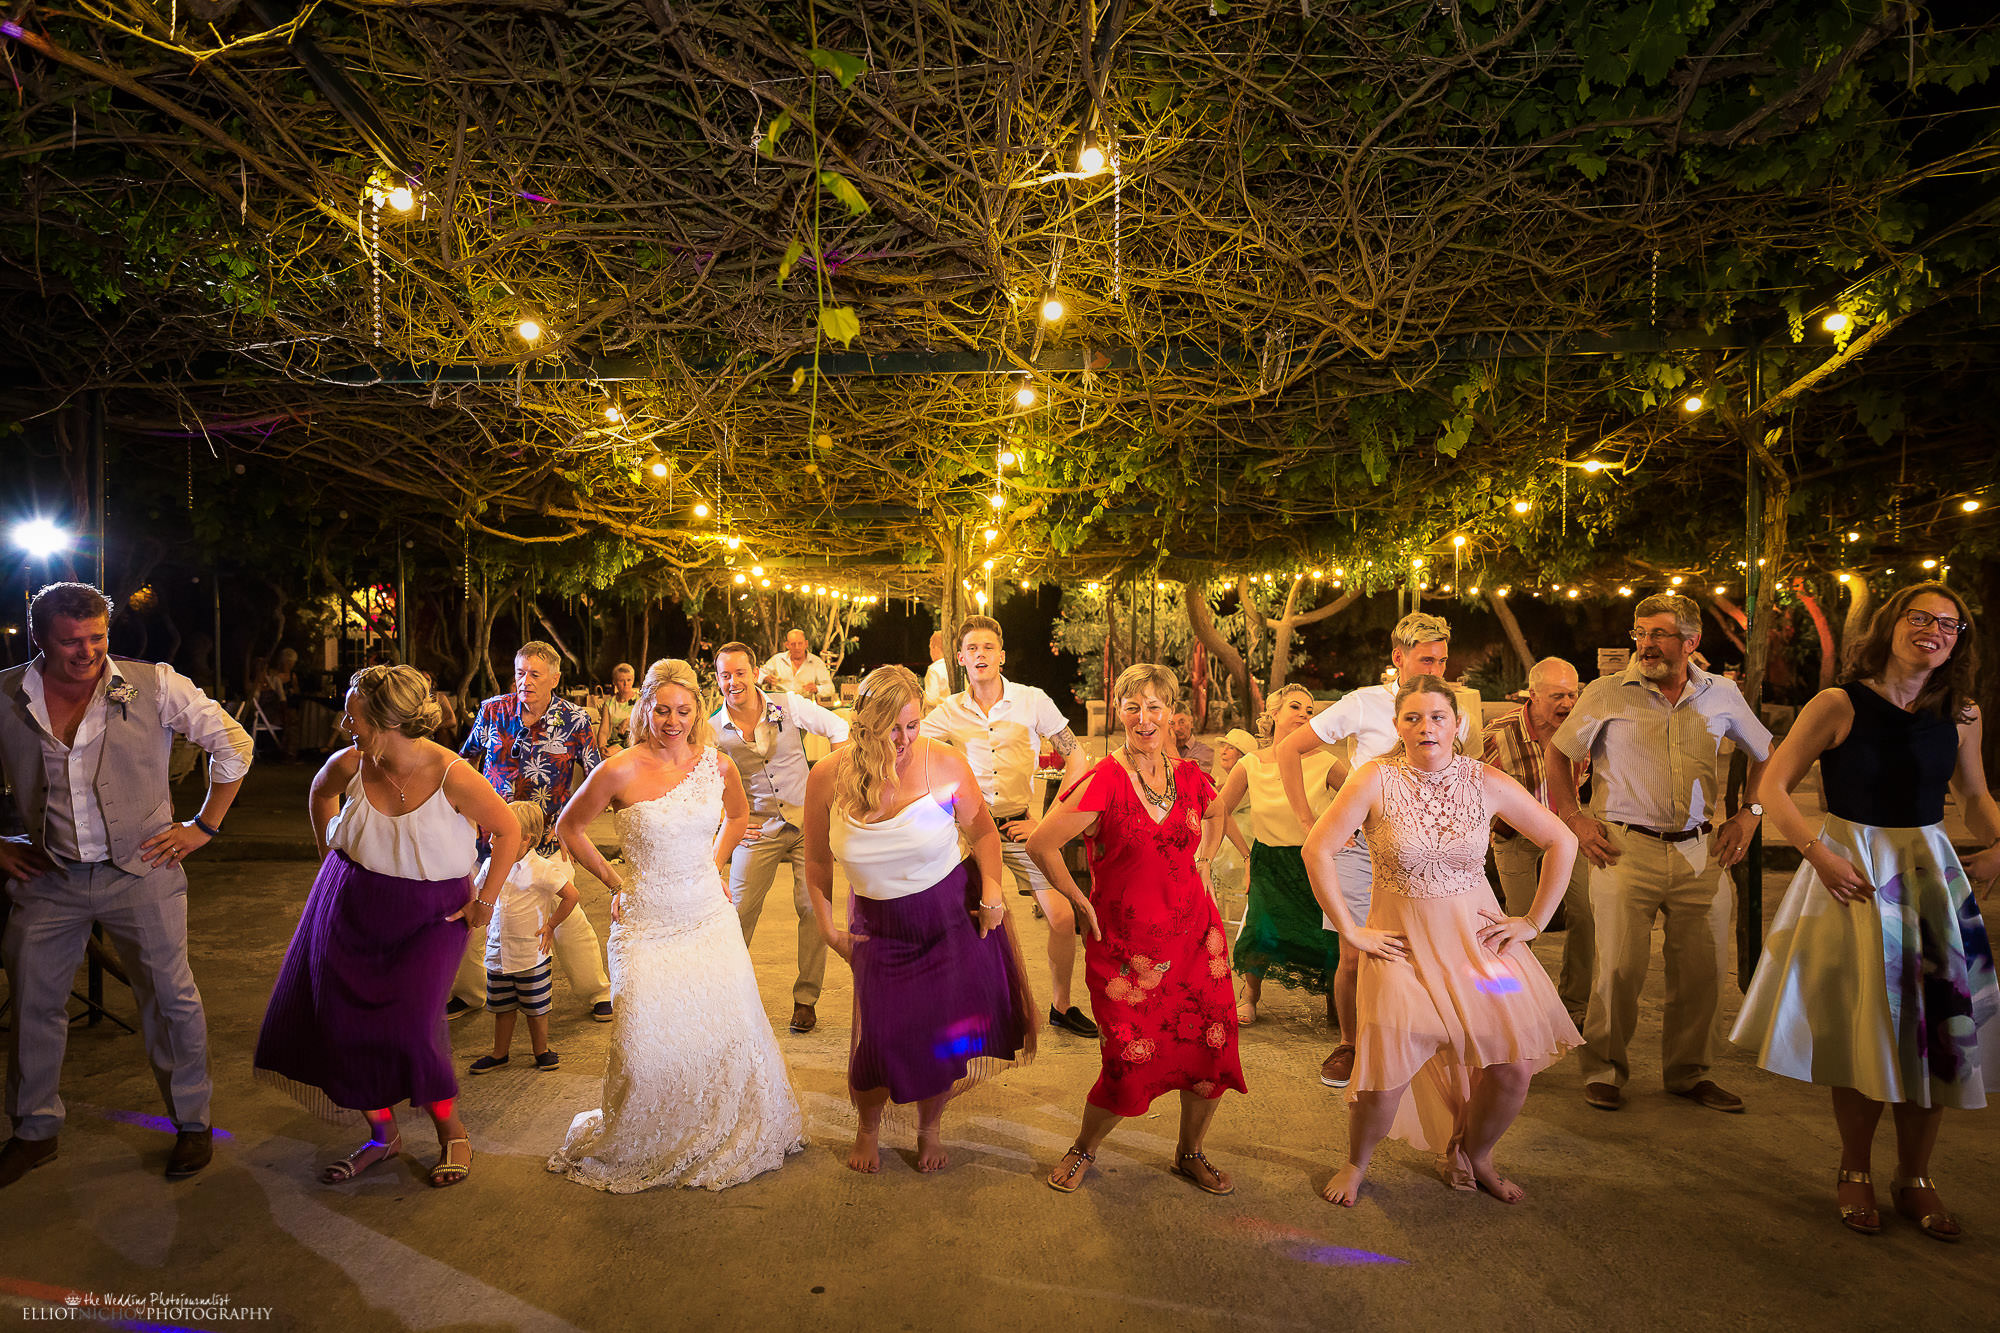 wedding-party-guests-dancing-recpeption-weddings-photographer